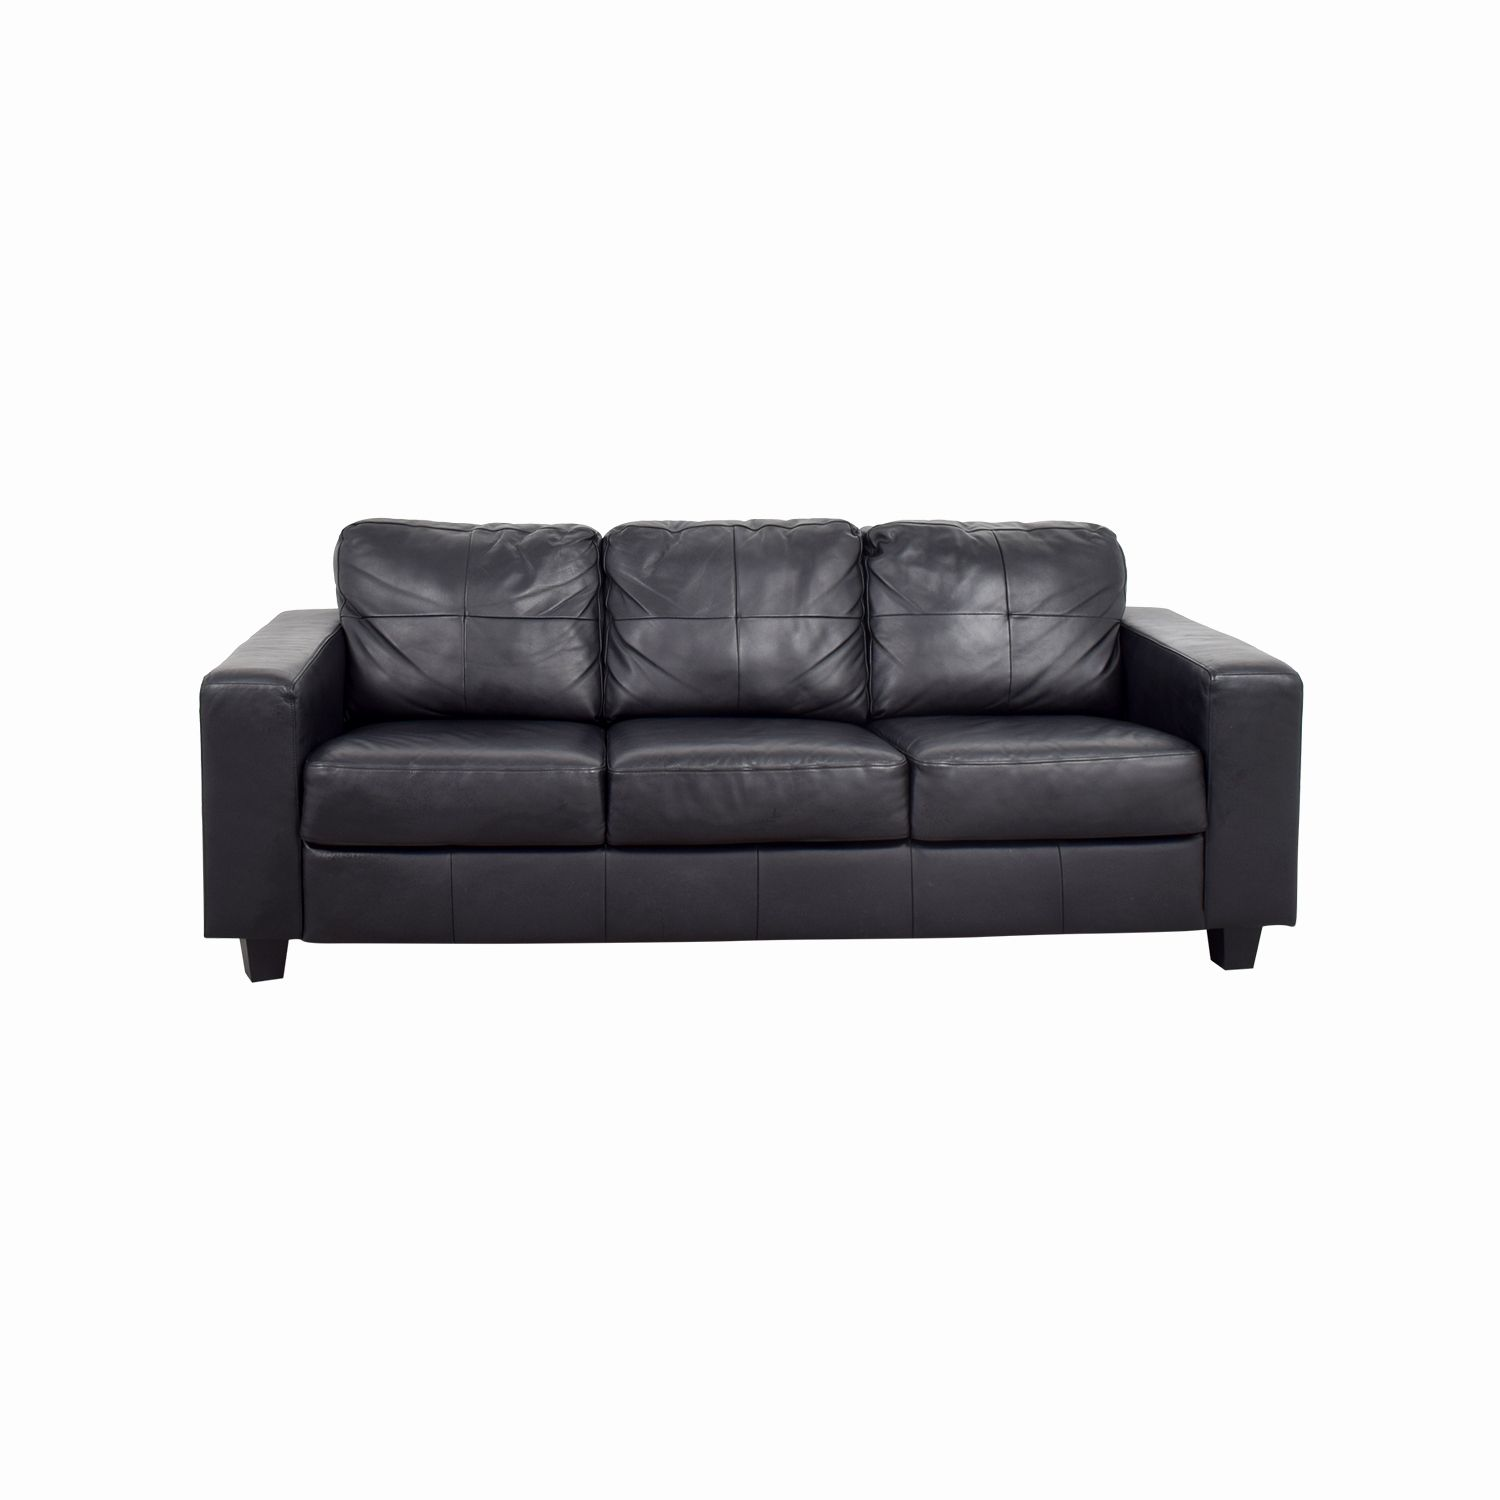 Merveilleux Beautiful Ikea Sofa Leather Pictures 44 Off Ikea Ikea Skogaby Black Leather  Sofa Sofas